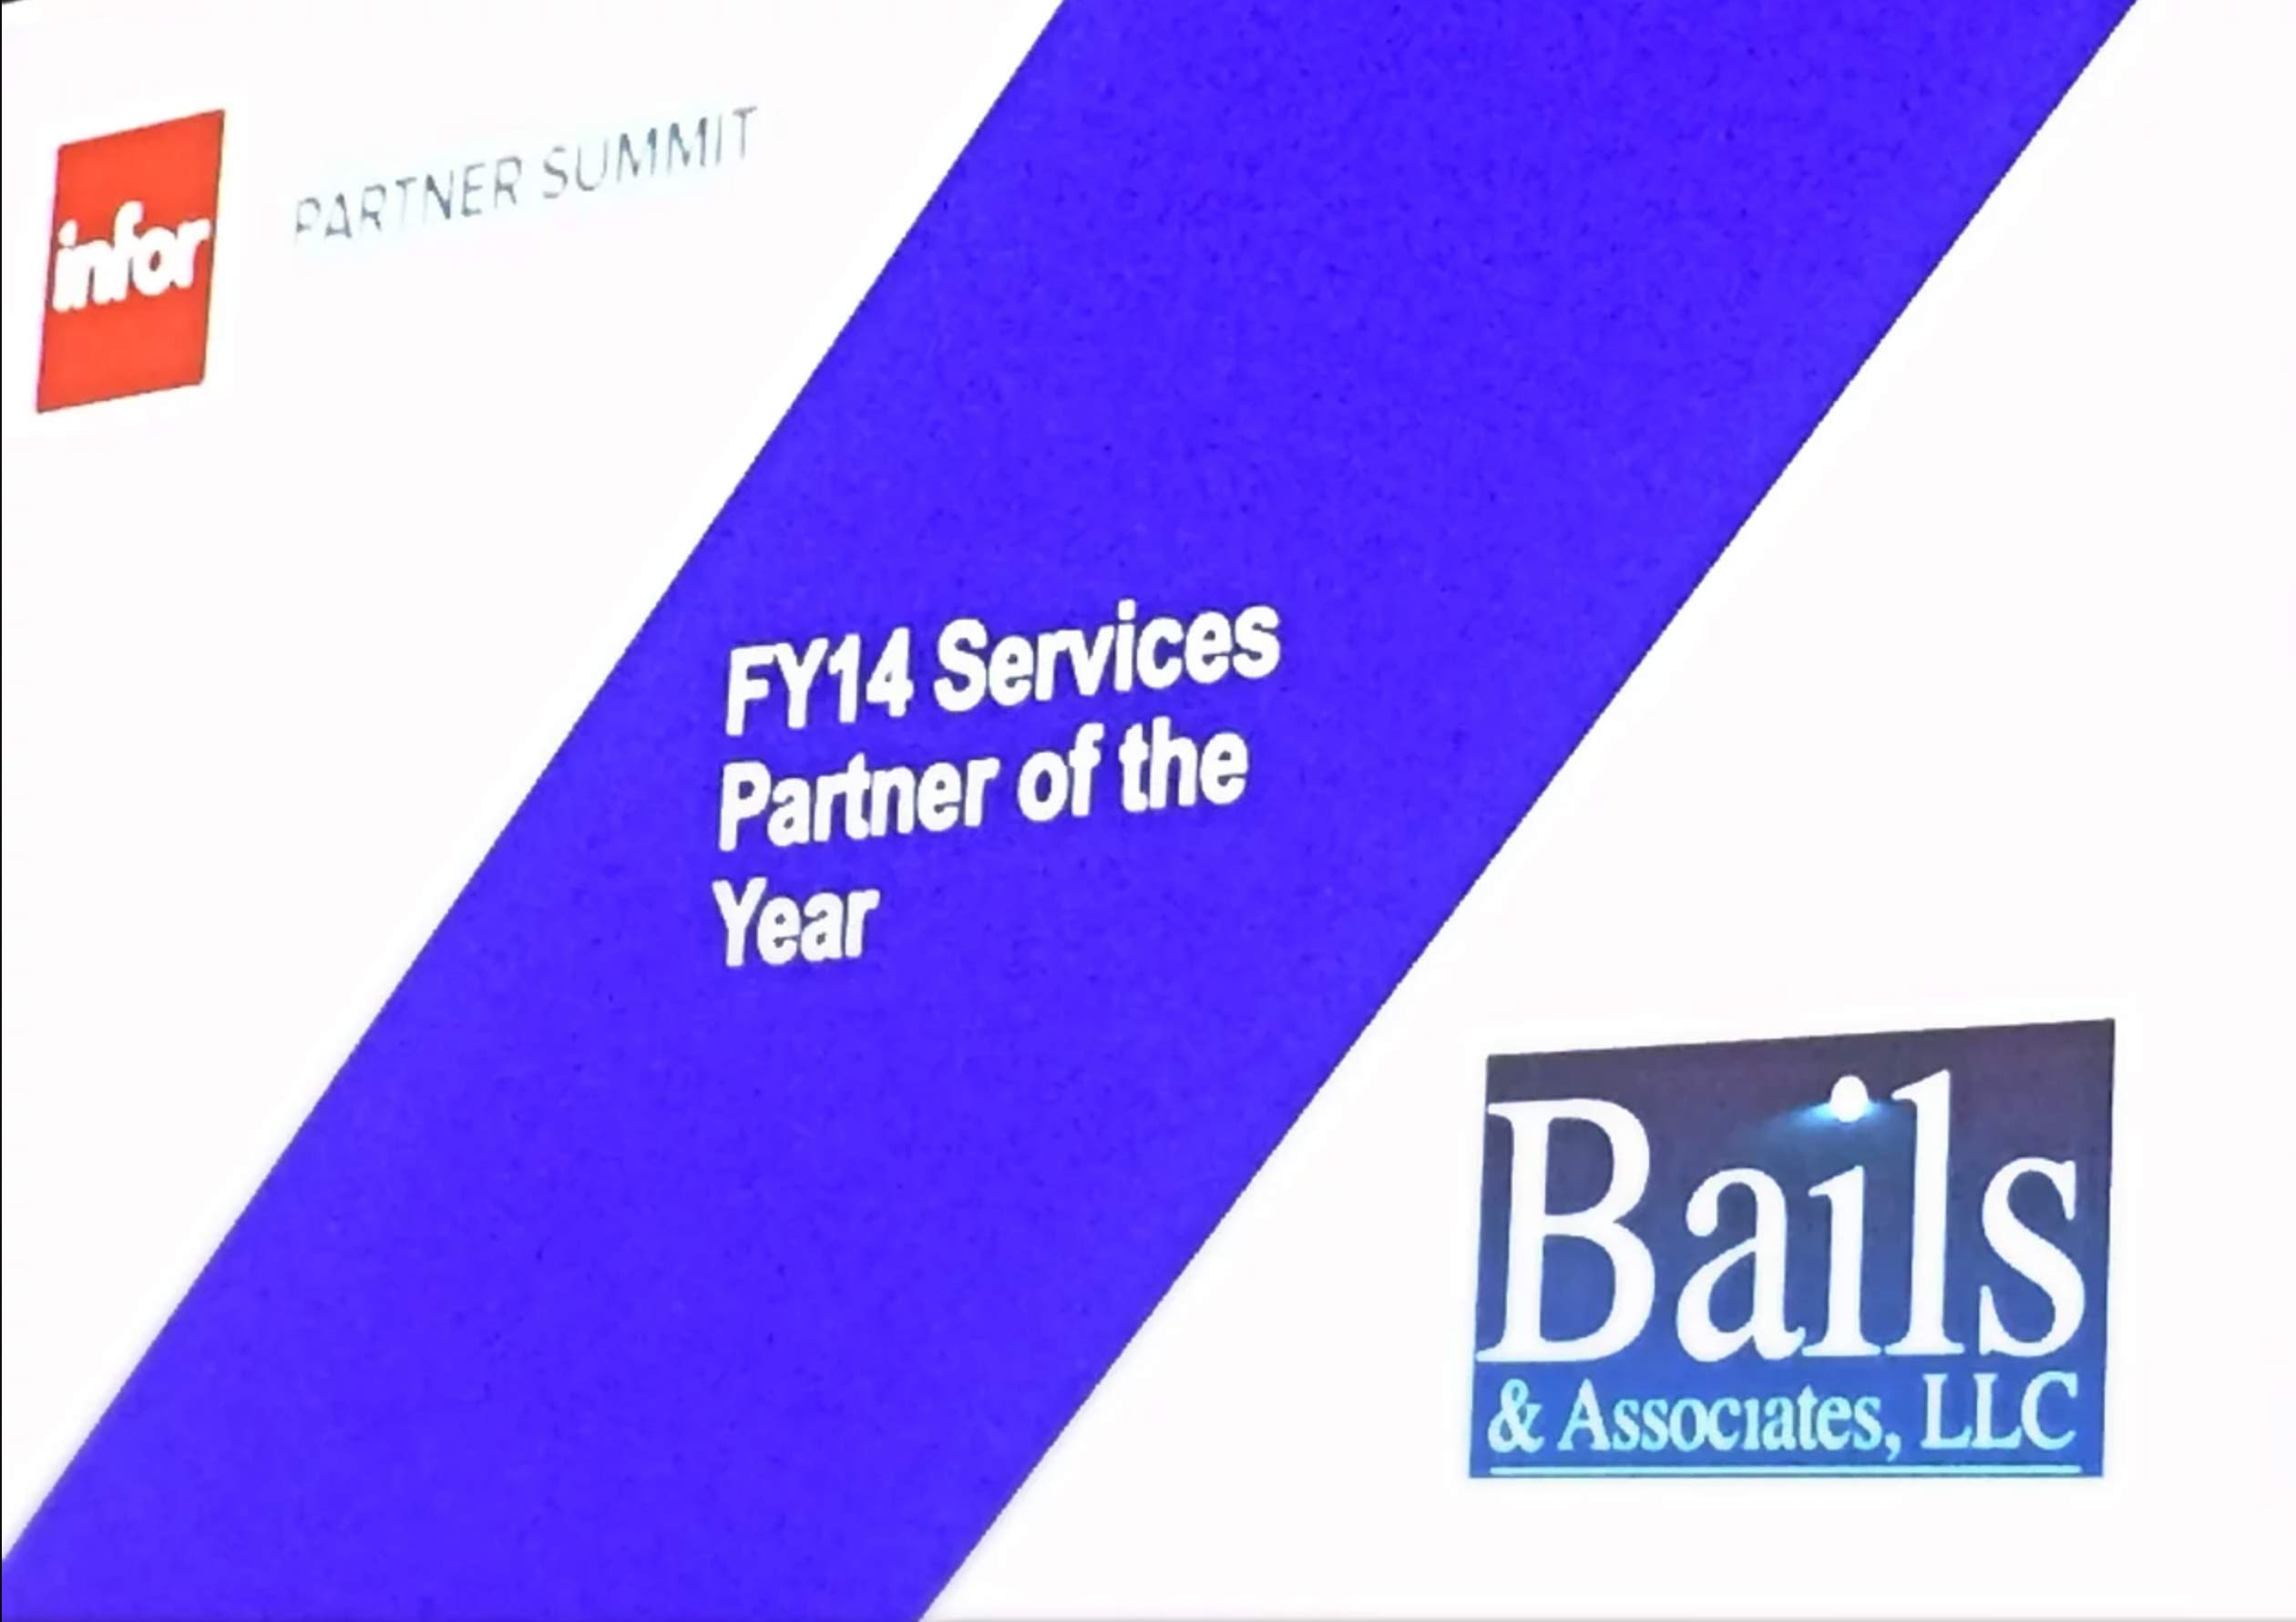 2015 Infor Partner of the Year Award Image